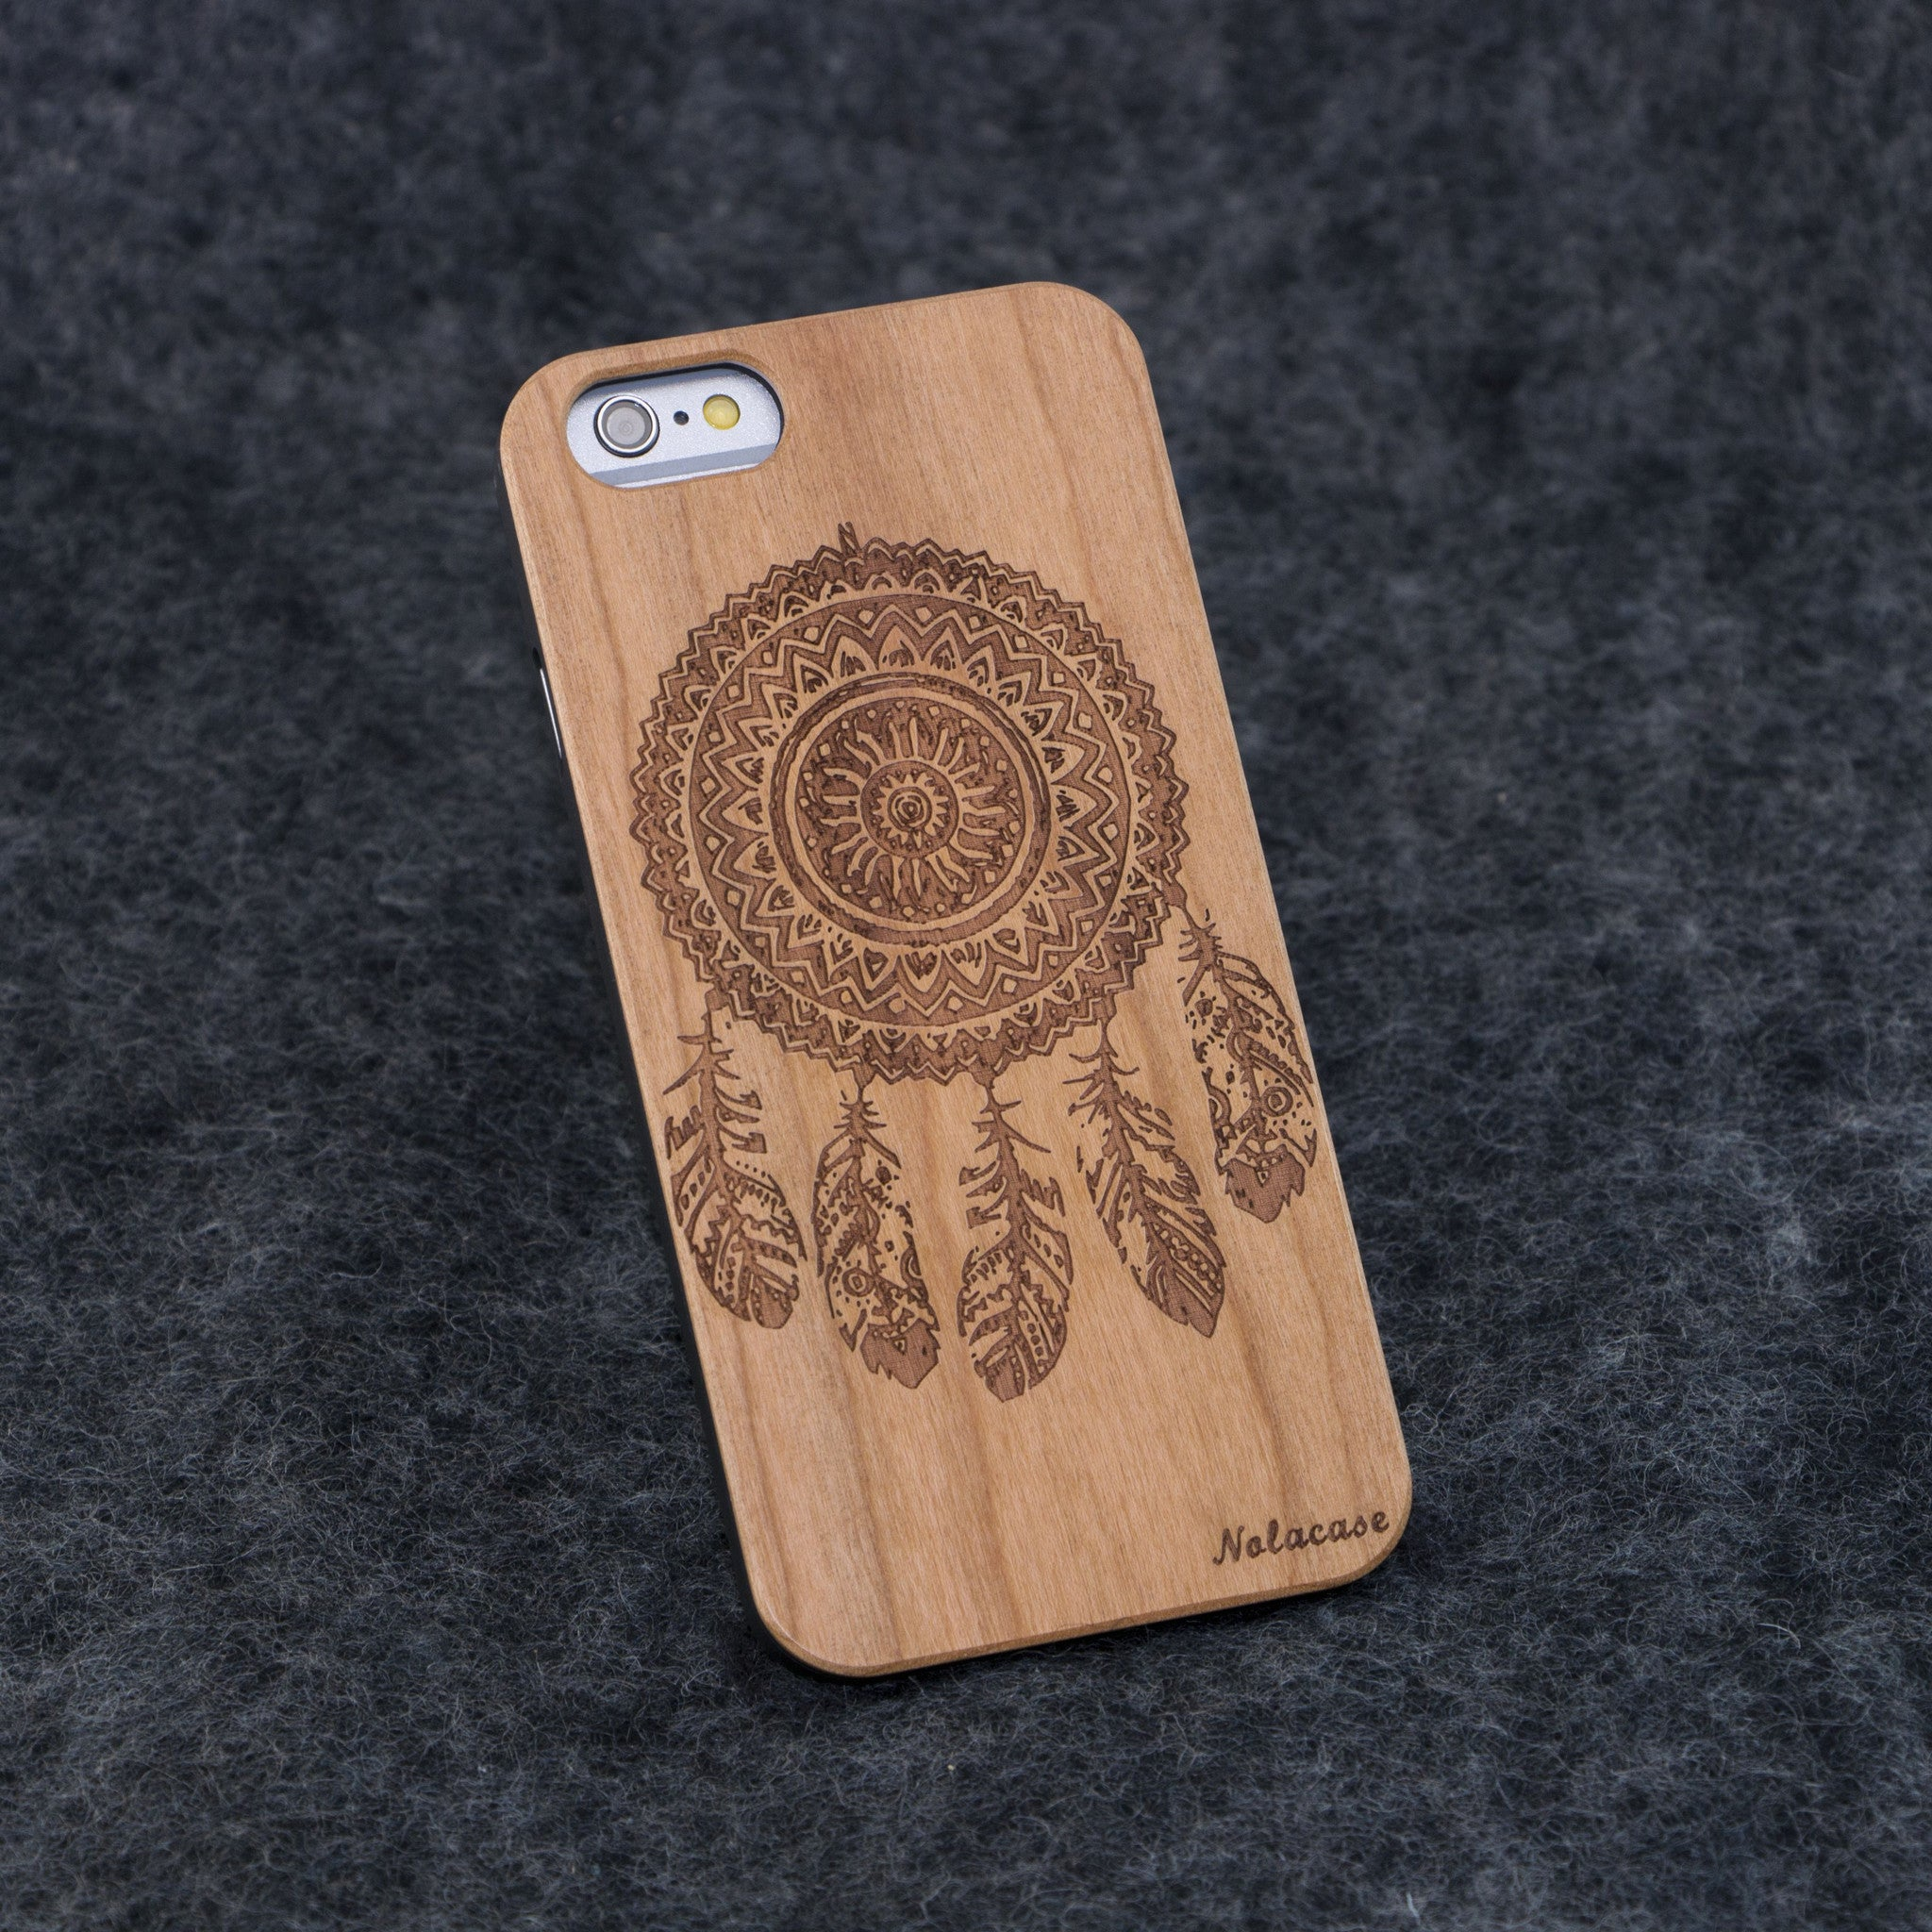 iPhone 6 / 6S Dream Catcher Slim Wood Case - NOLACASE